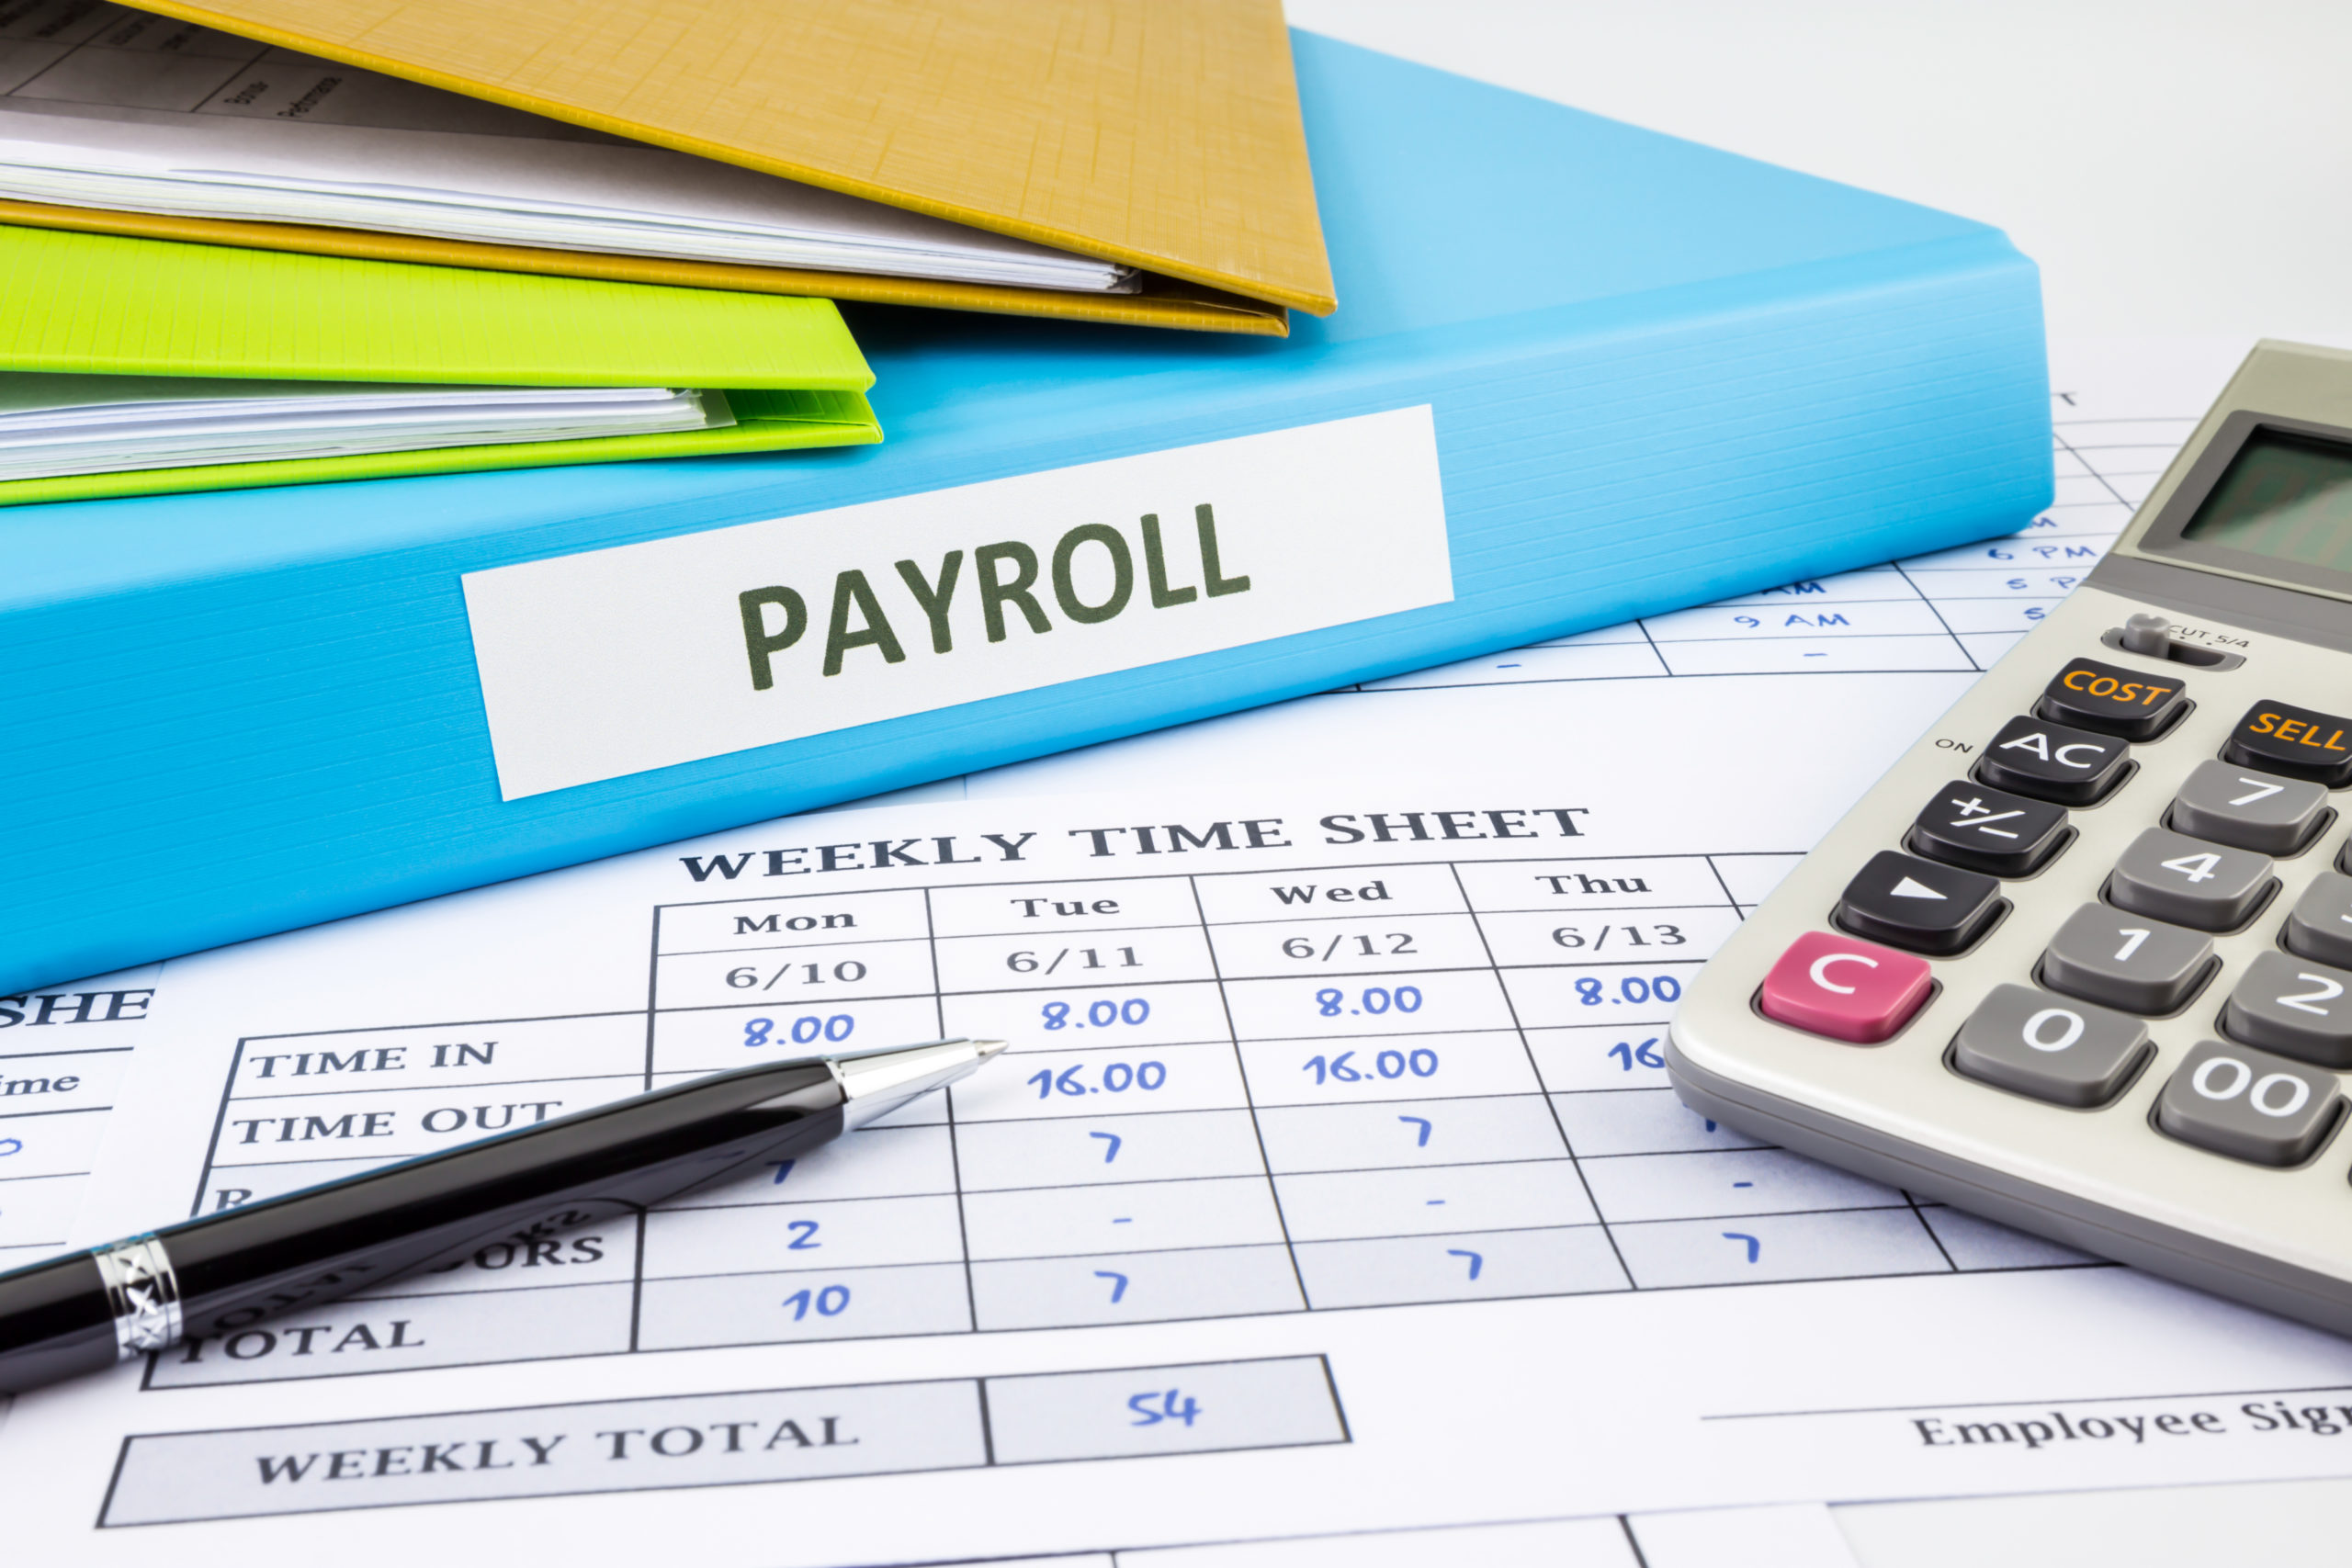 CARES Act – Deferral of Employer Payroll Taxes